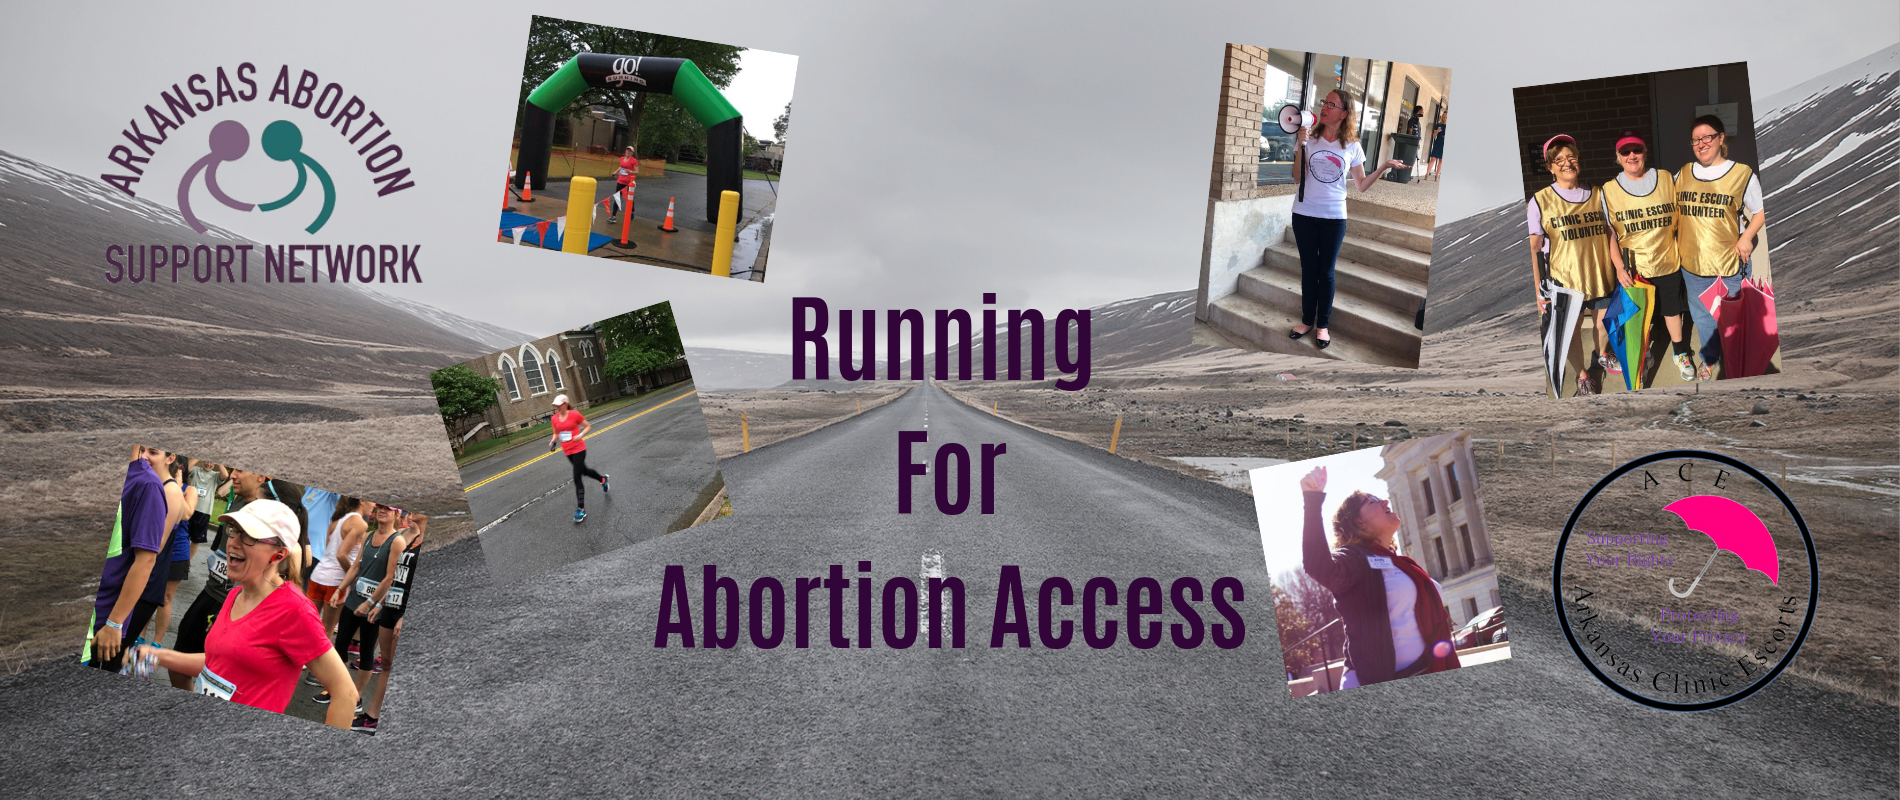 Running For Abortion Access for Website 4.png